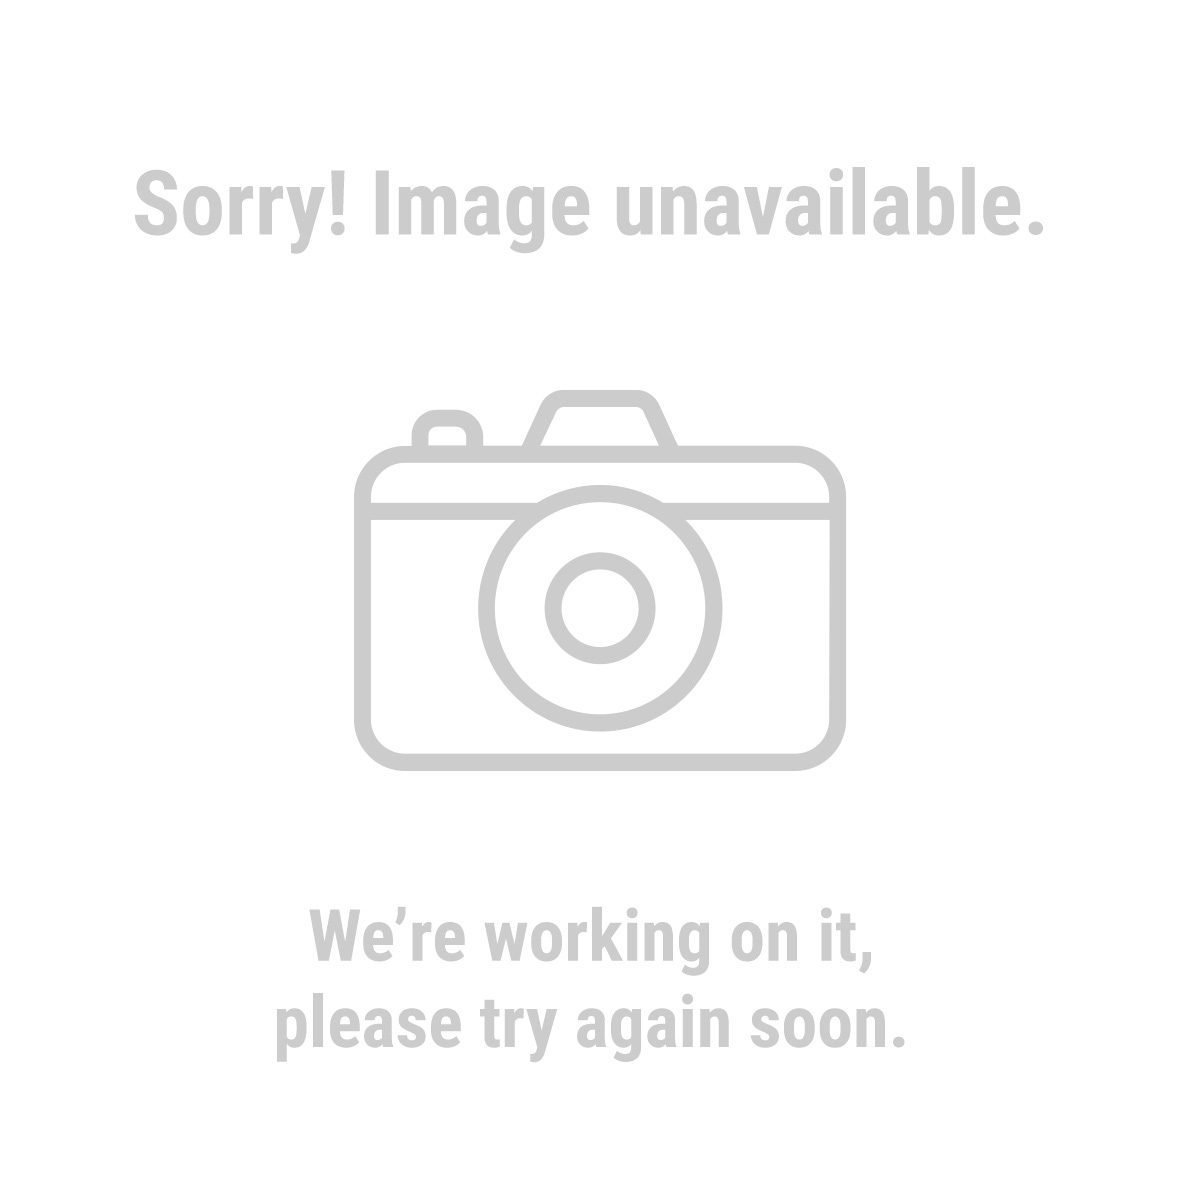 Franklin 63050 Heavy Duty Portable Scaffold